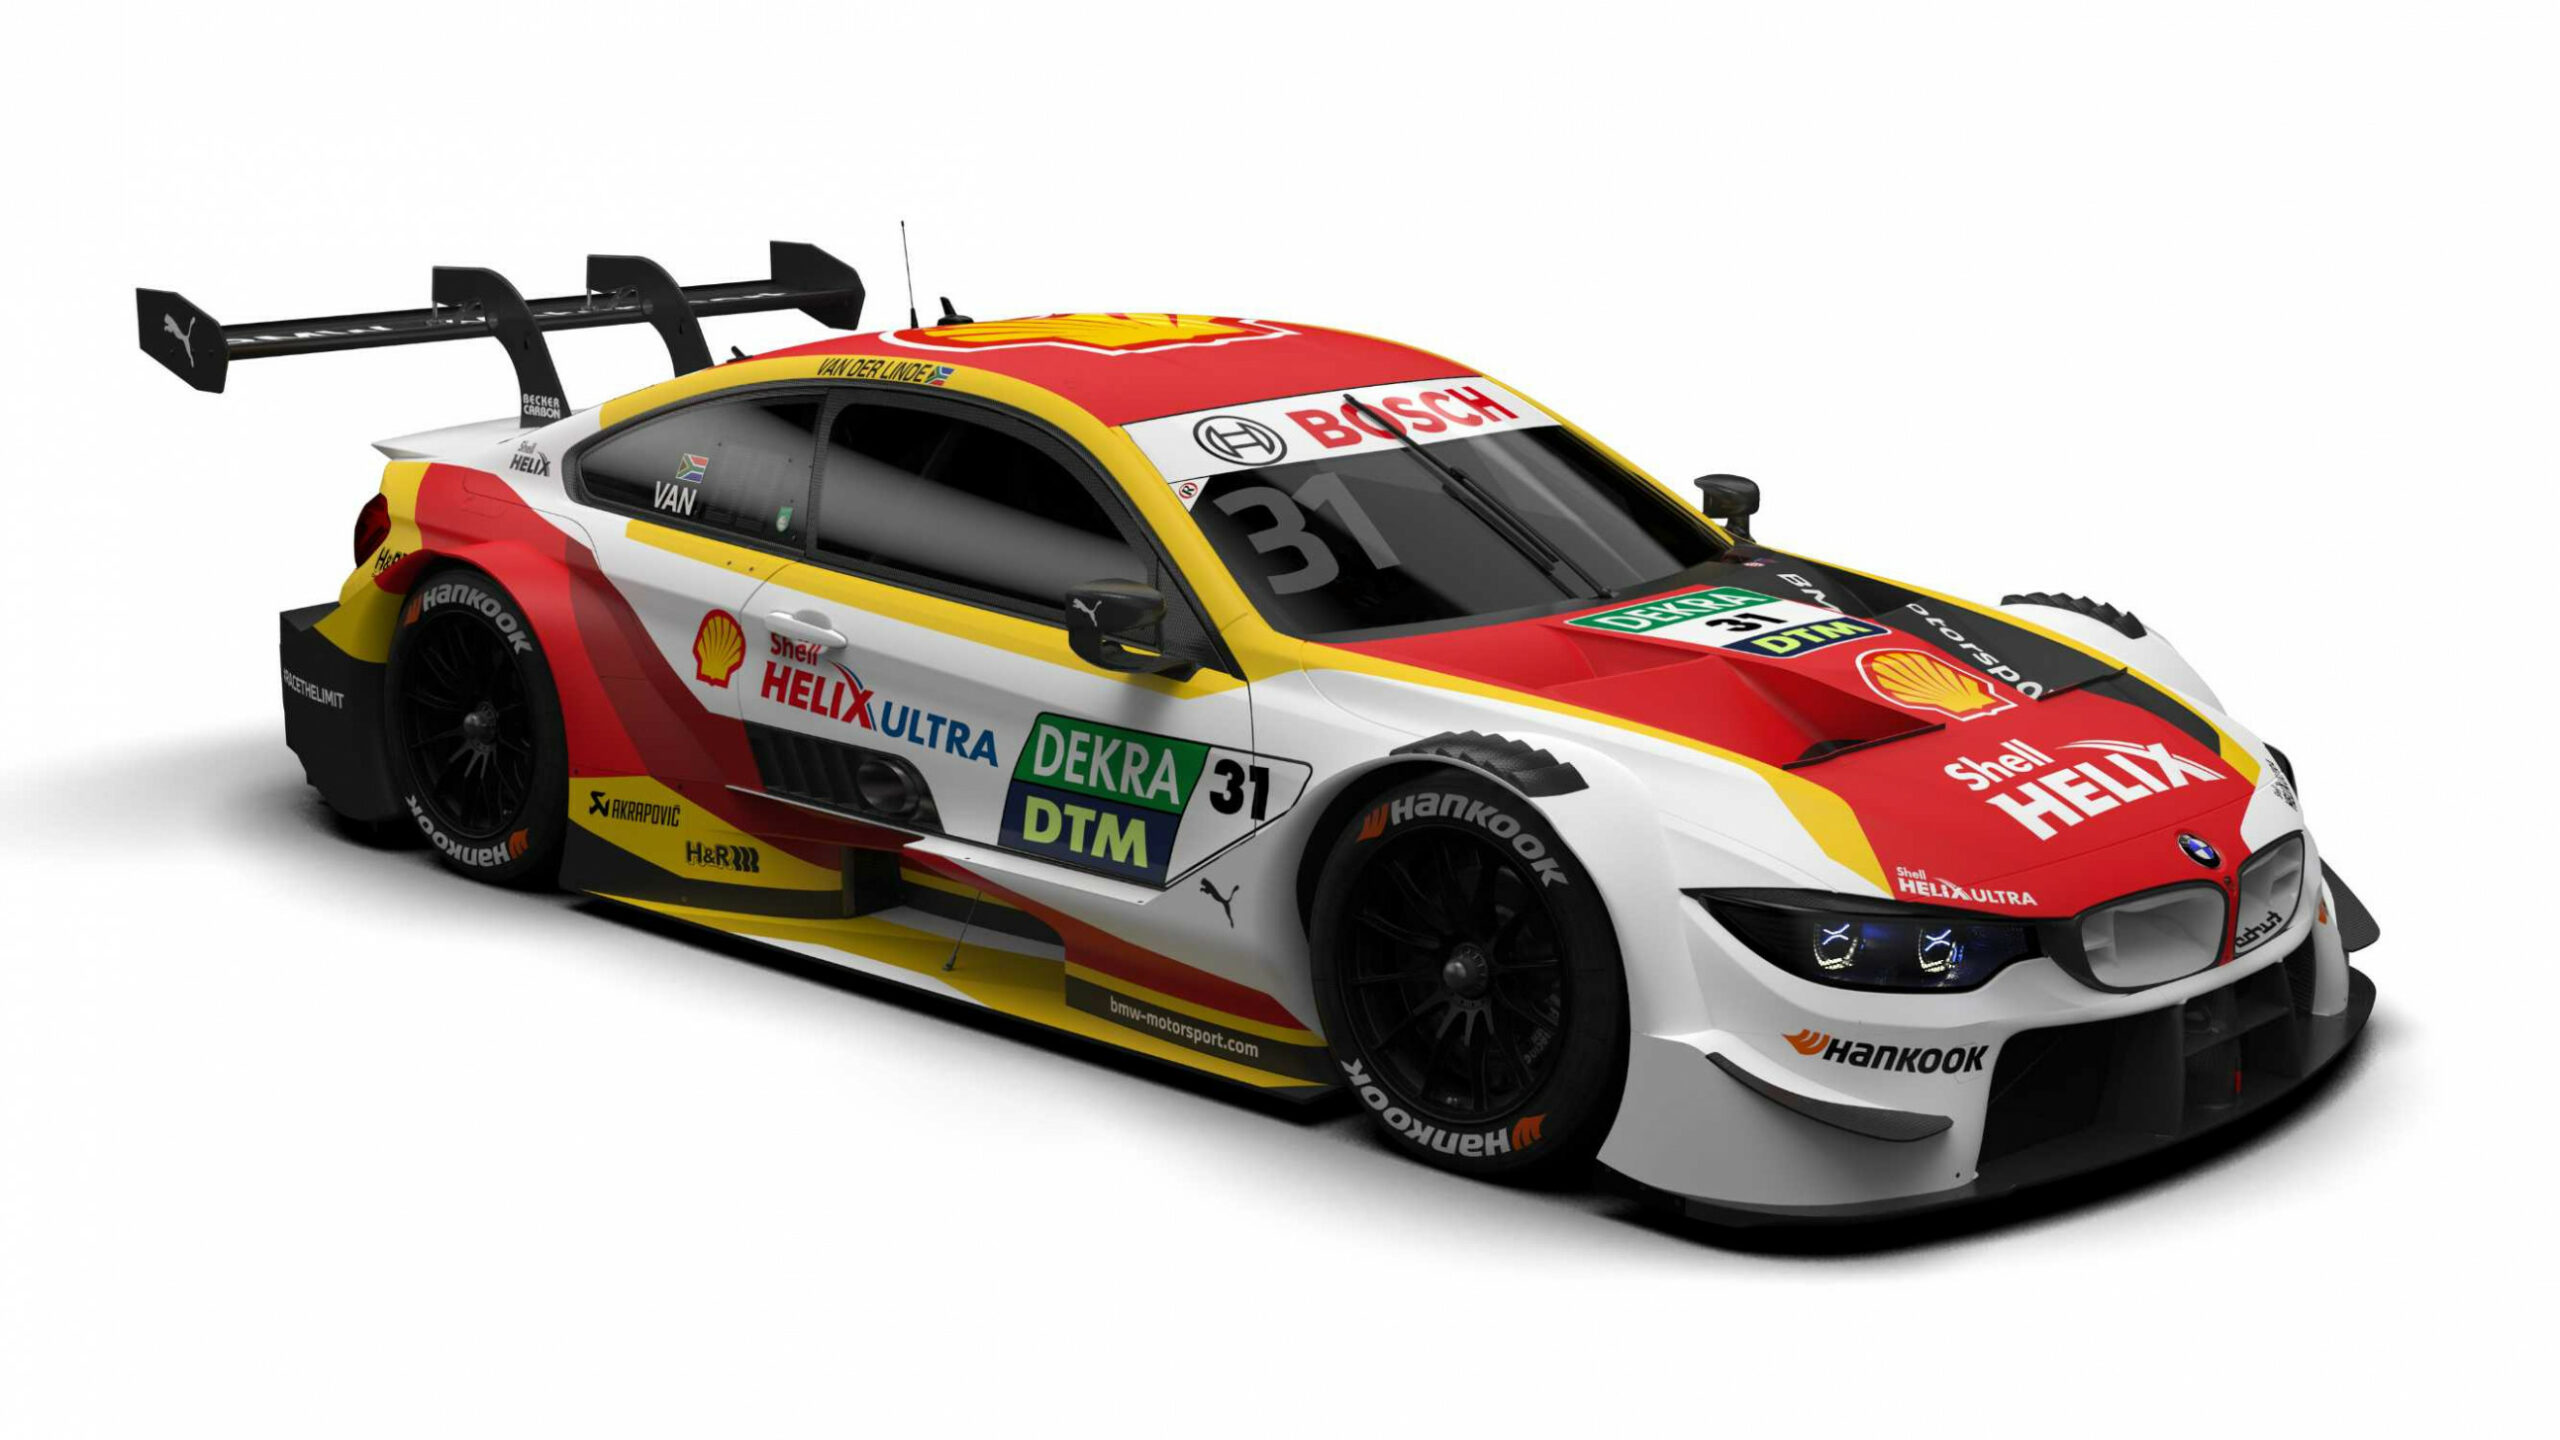 Strong together: BMW M Motorsport and its partners to continue the ...